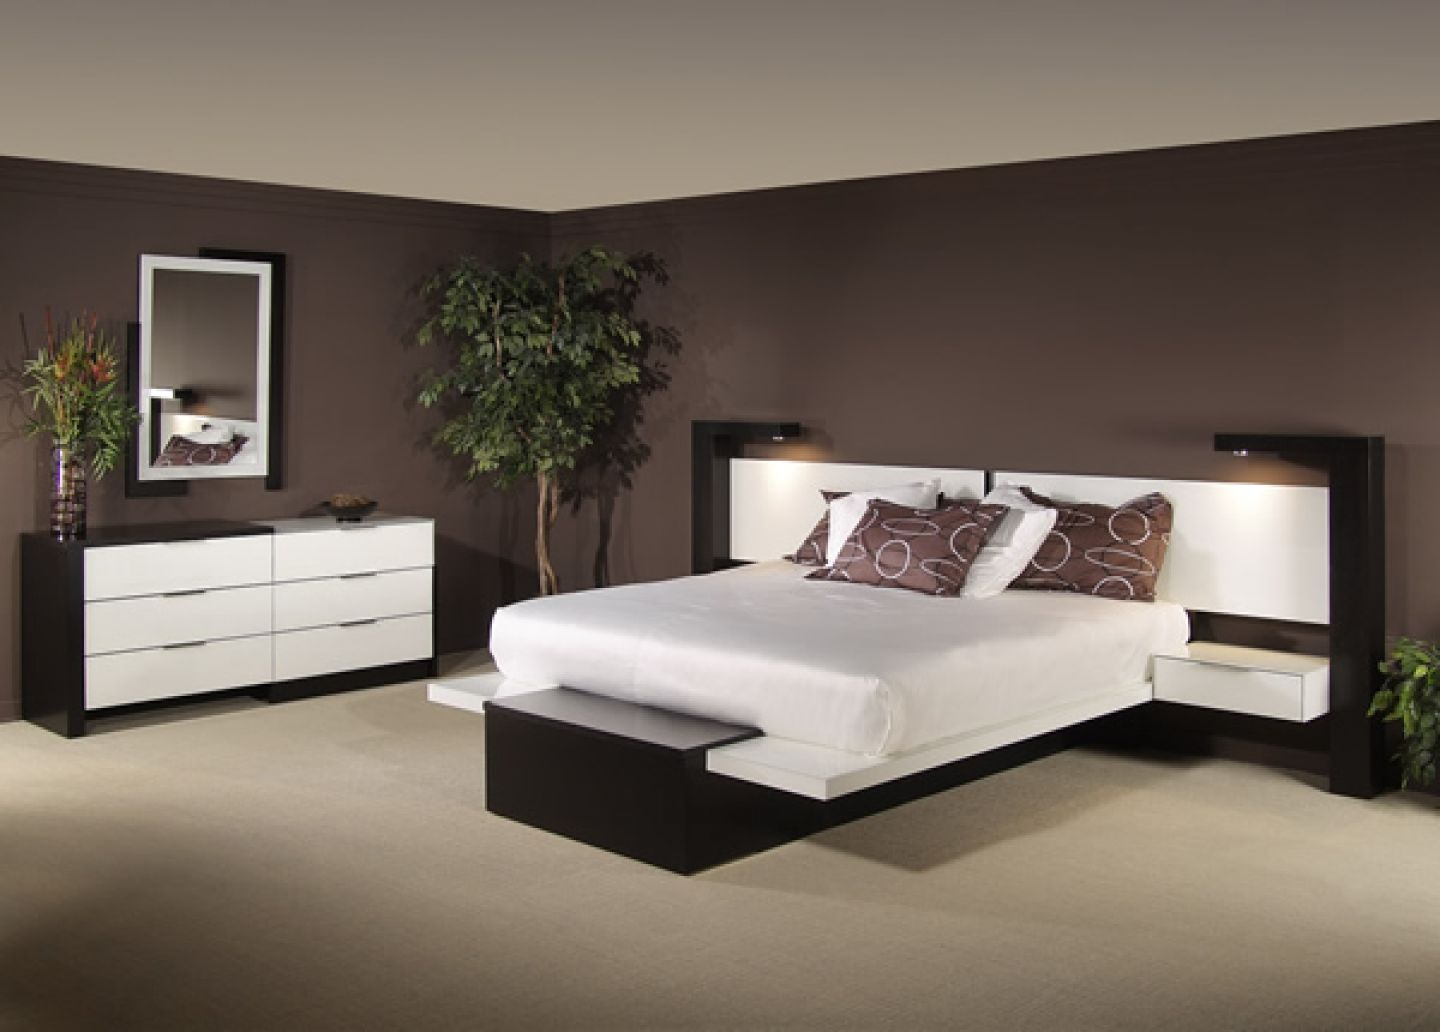 Furniture Degine contemporary furniture designs ideas | bedroom furniture